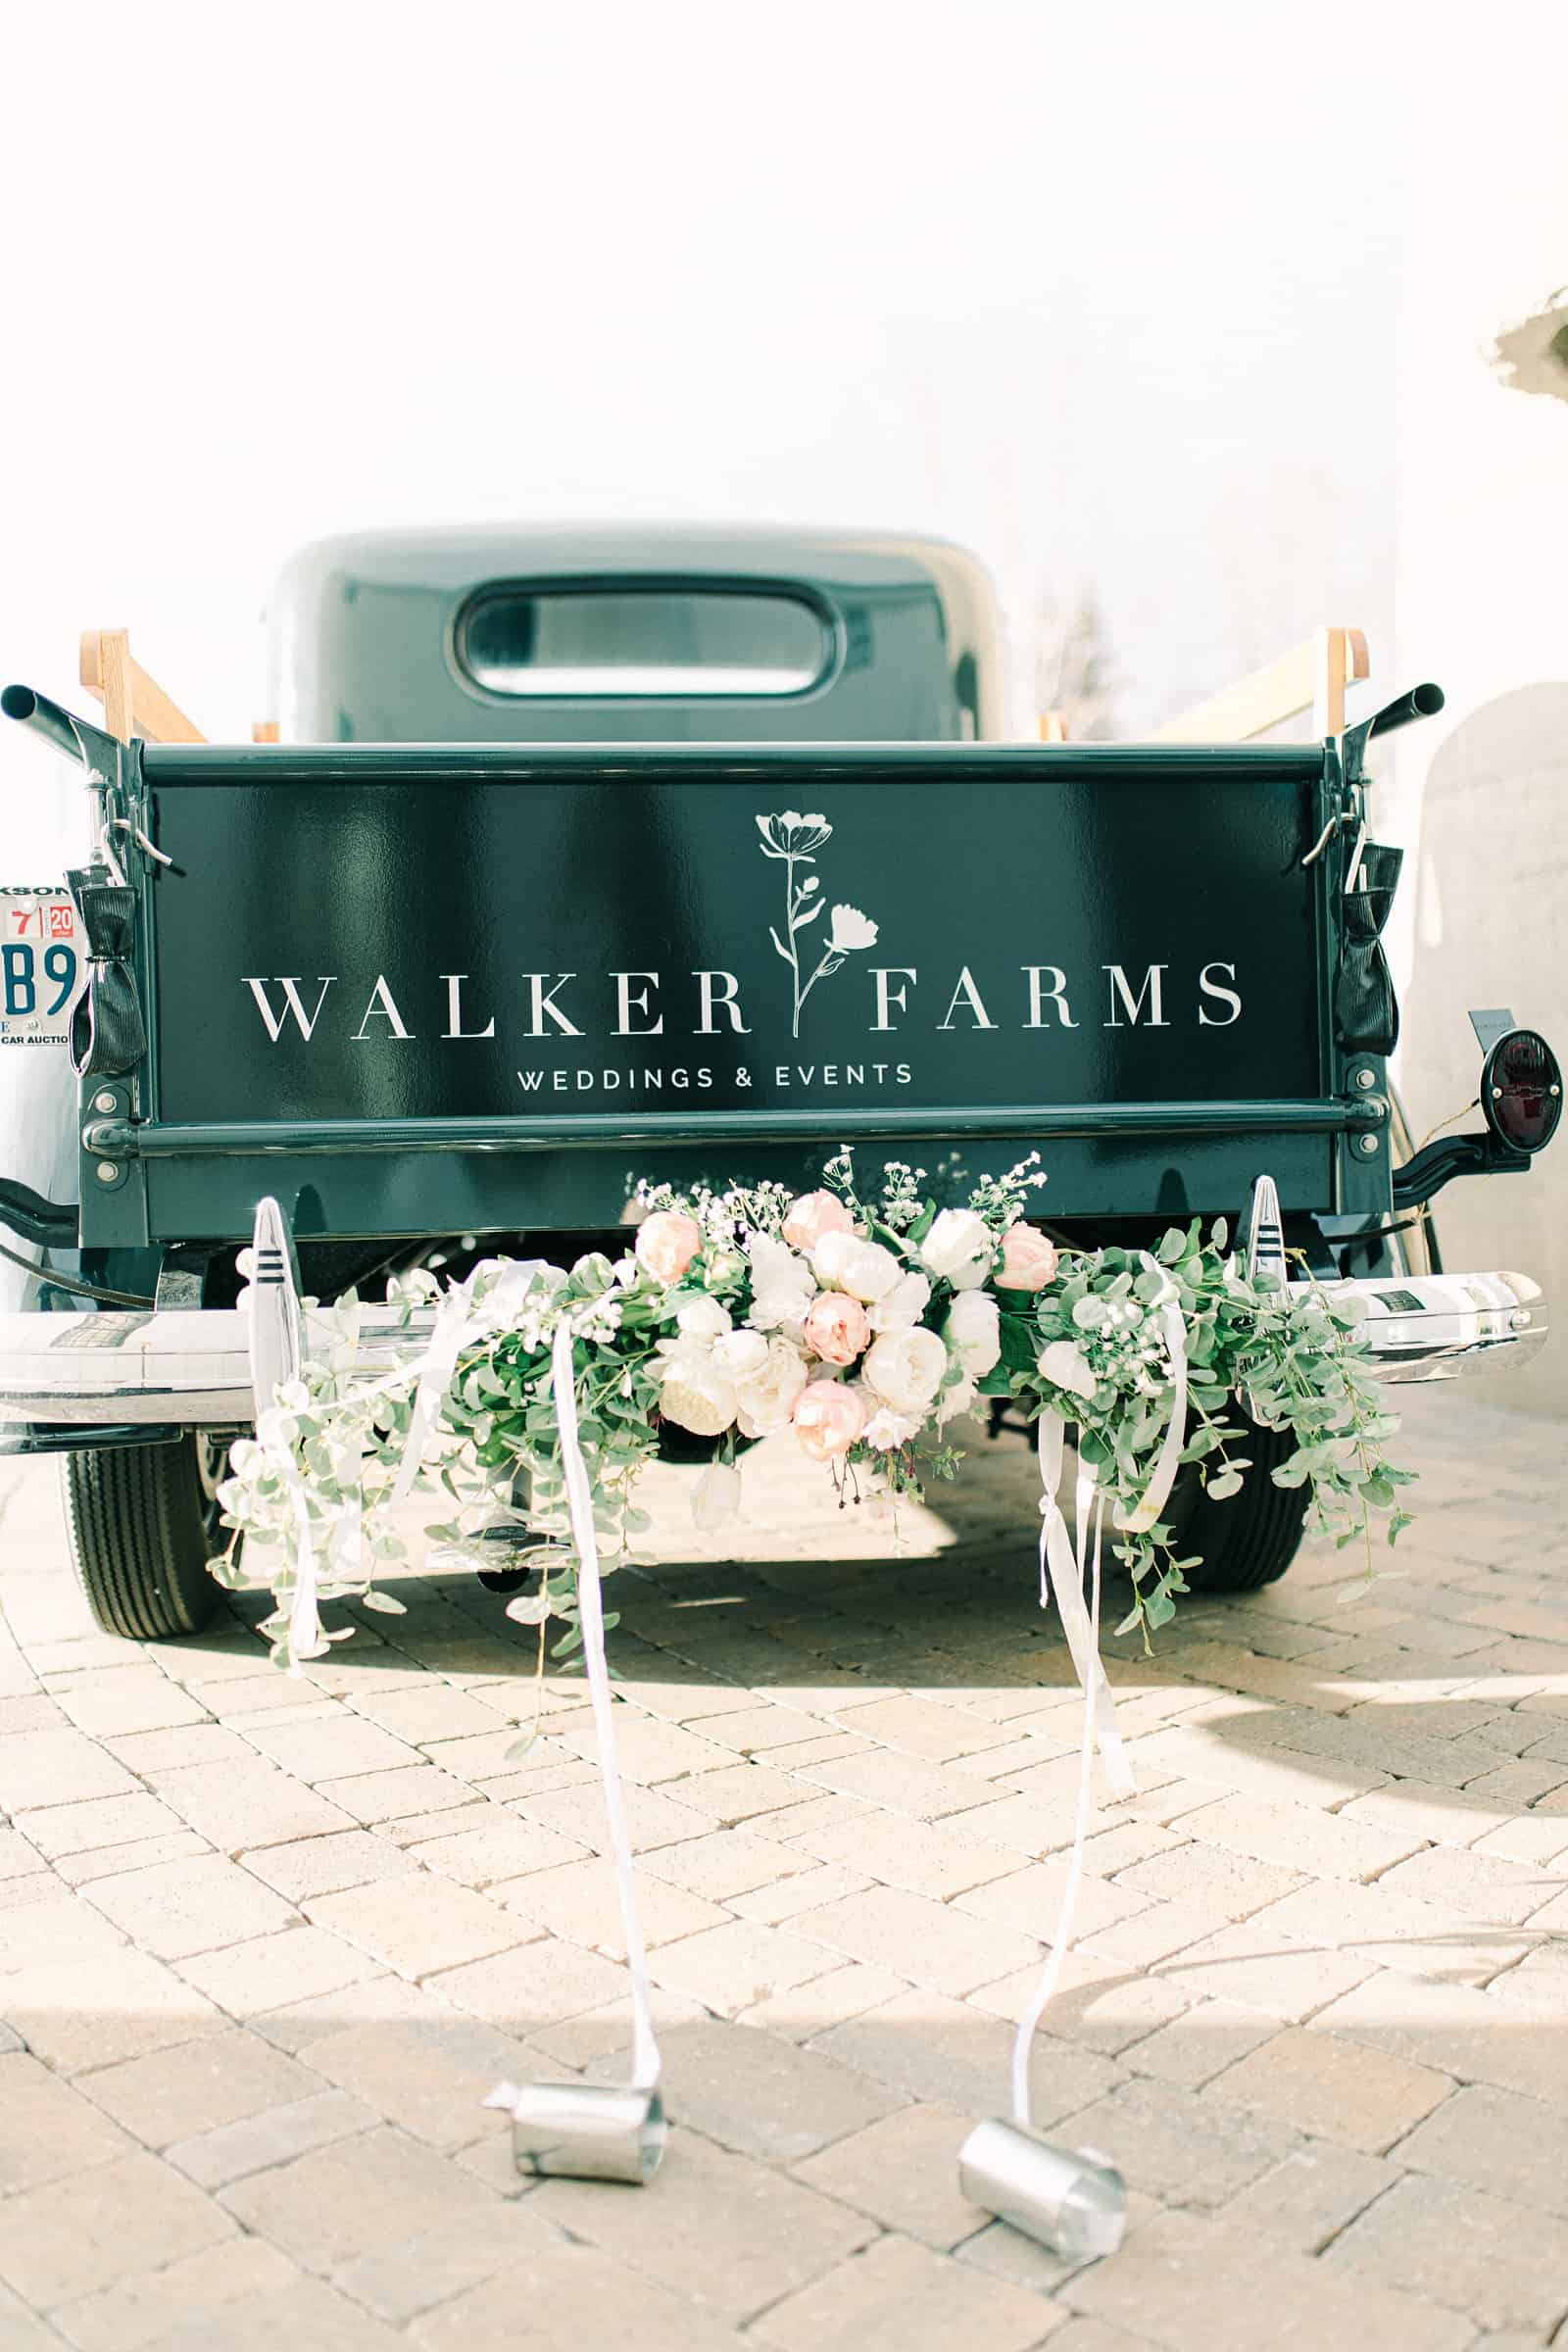 Walker Farms wedding and events, decorated truck, getaway car, Utah wedding, truck covered in flowers, reception decor